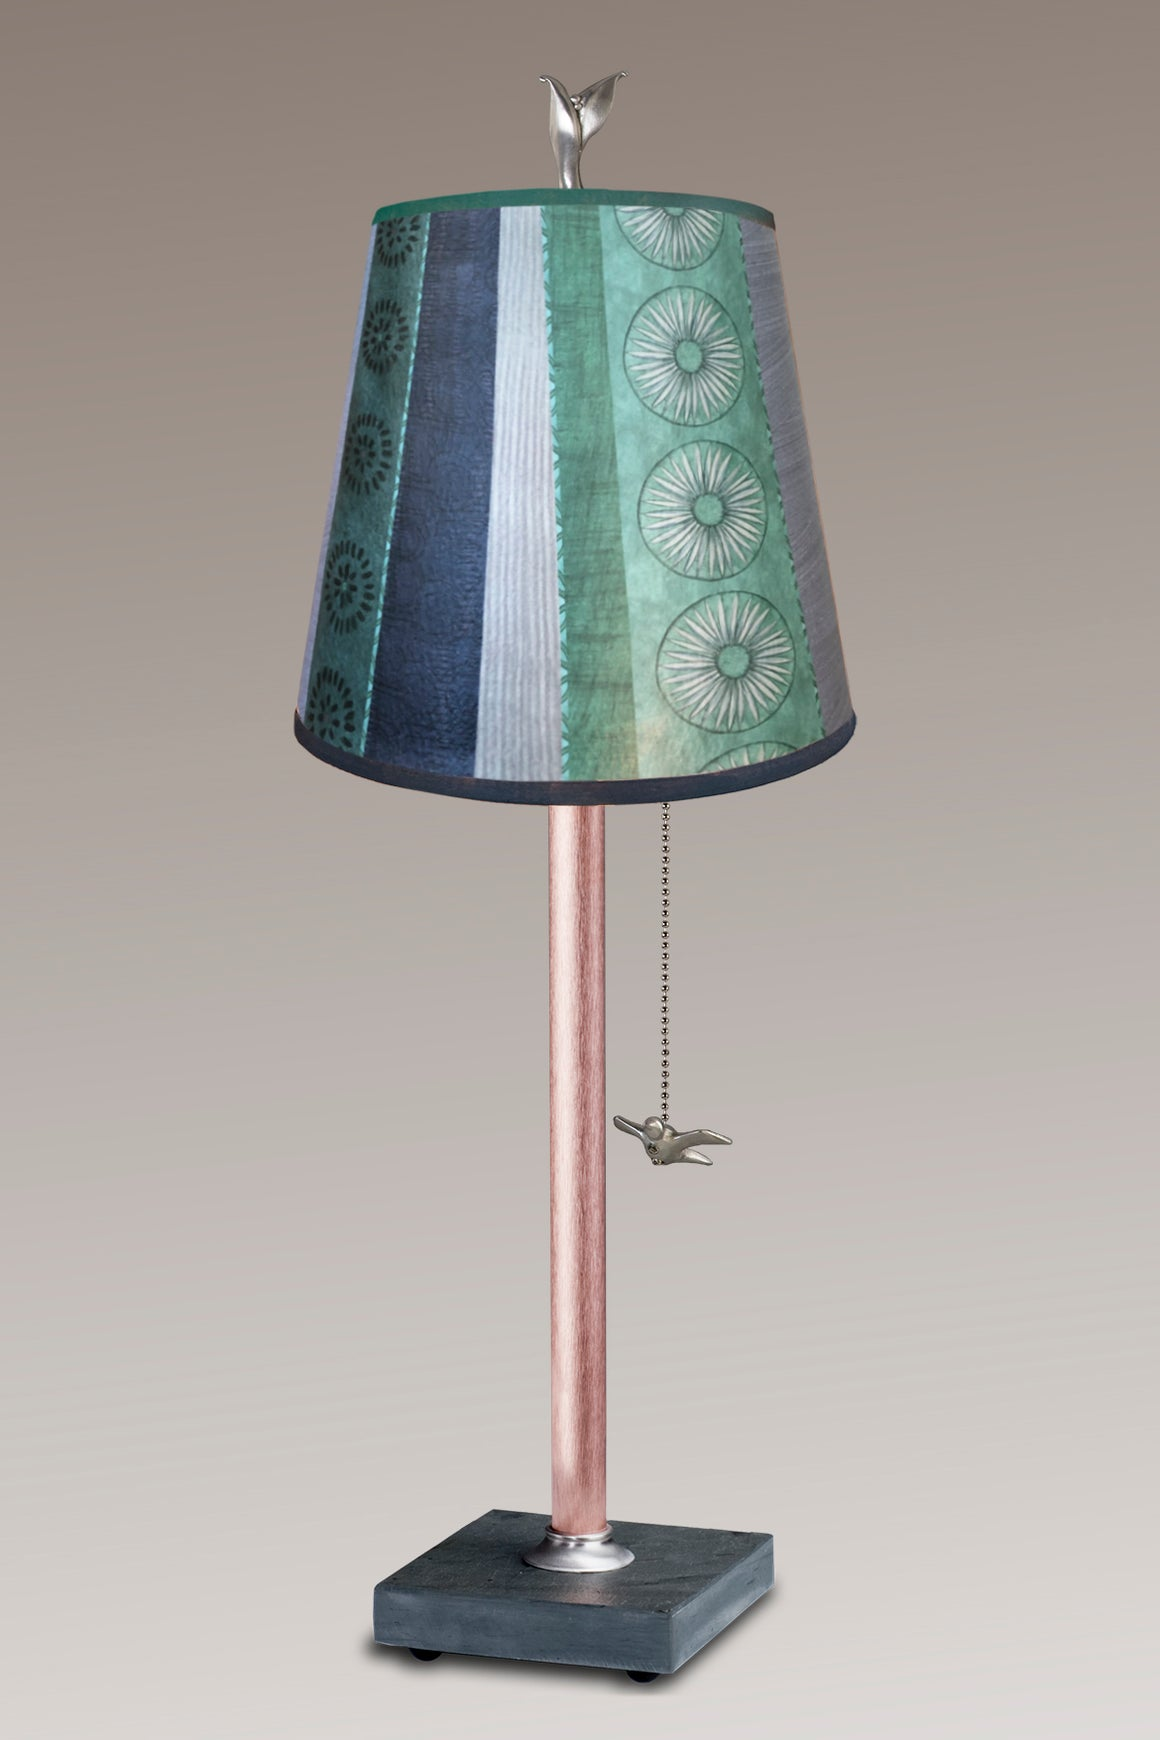 Copper Table Lamp on Vermont Slate Base with Small Drum Shade in Serape Waters